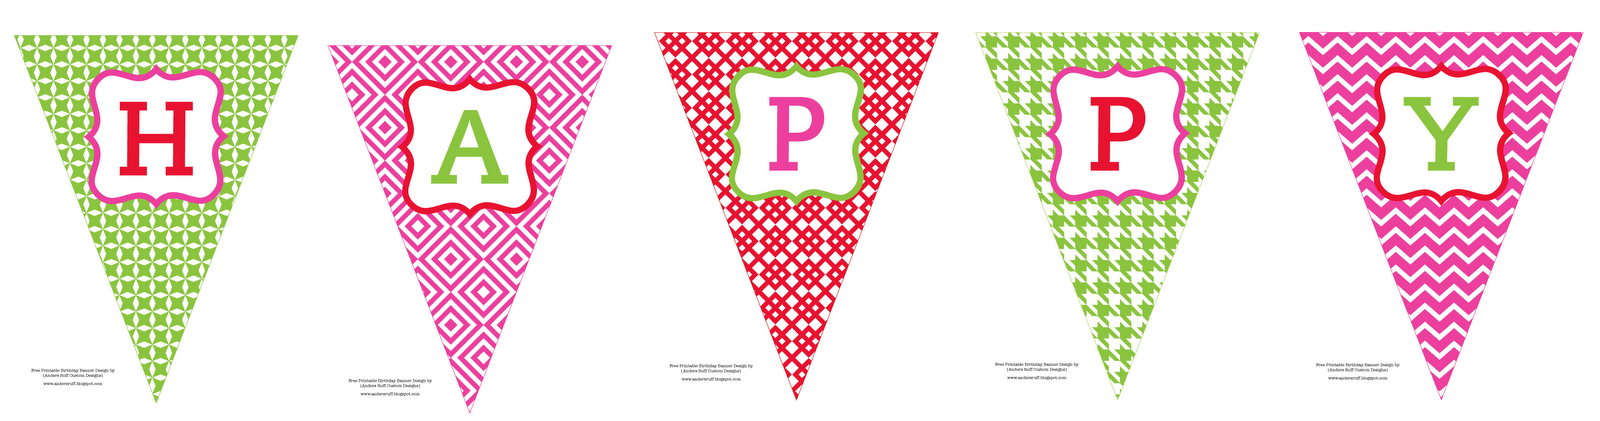 free happy birthday banner templates download - Asafon.ggec.co